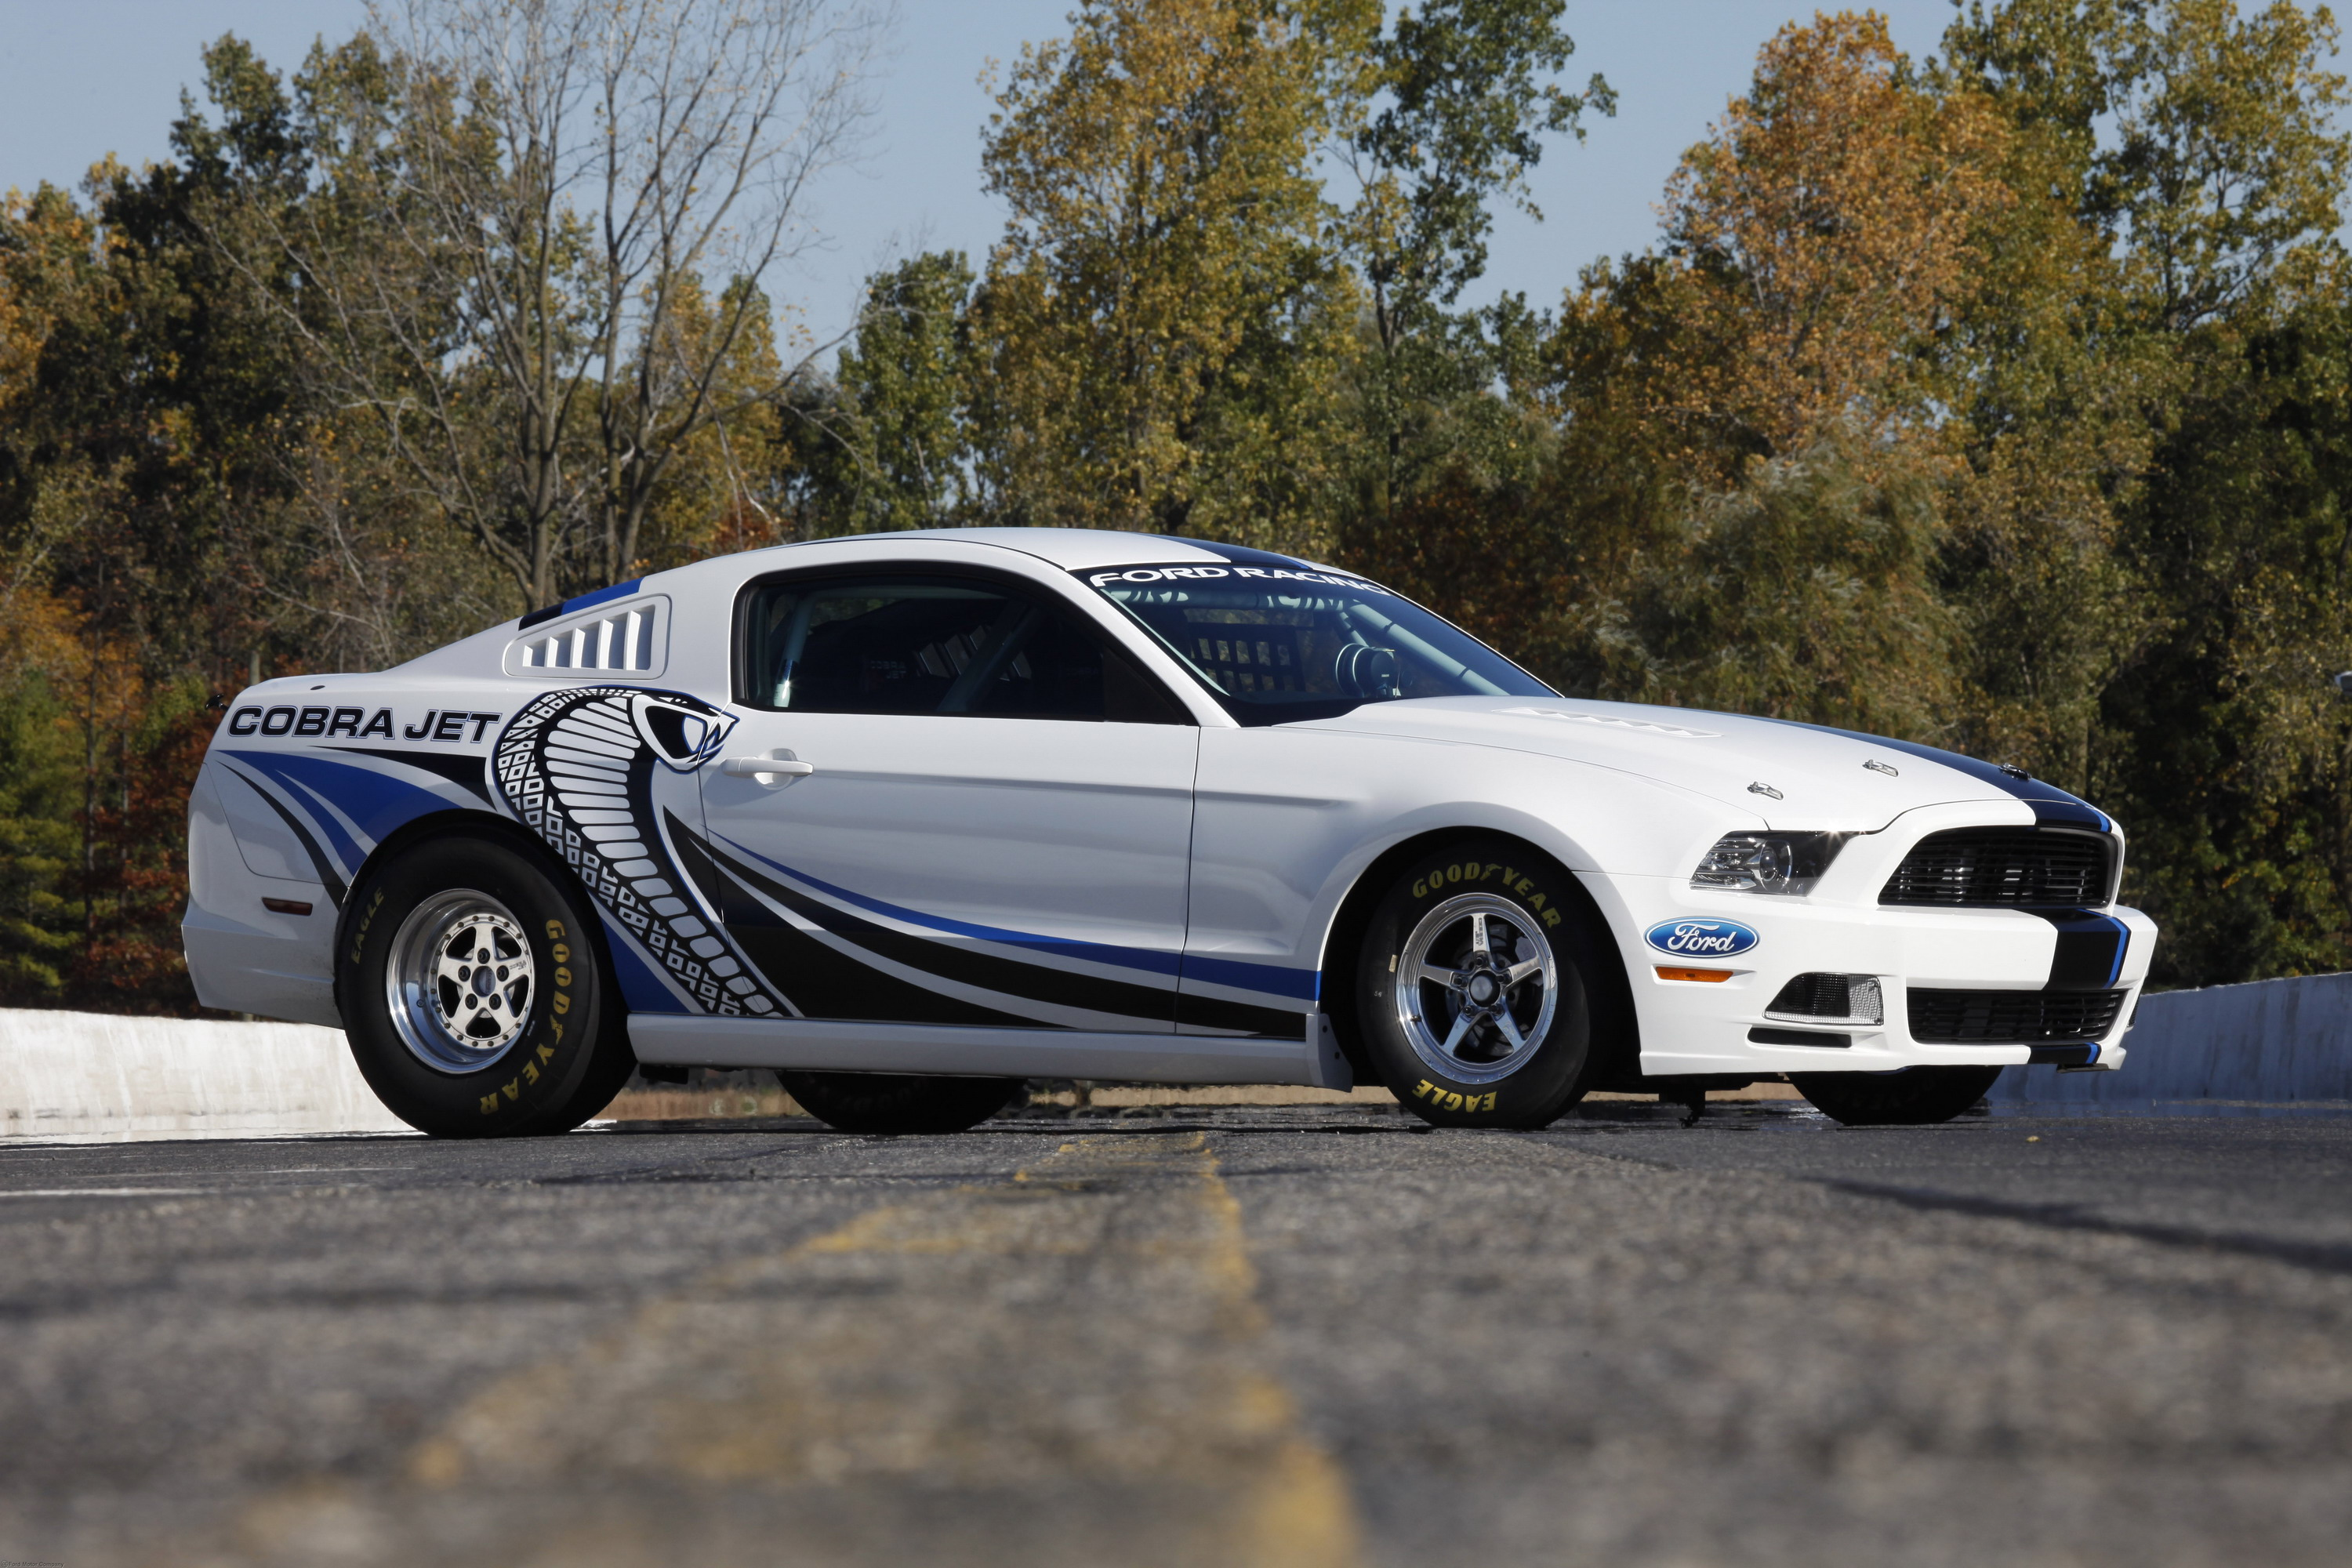 2013 ford mustang cobra jet twin turbo concept review. Black Bedroom Furniture Sets. Home Design Ideas